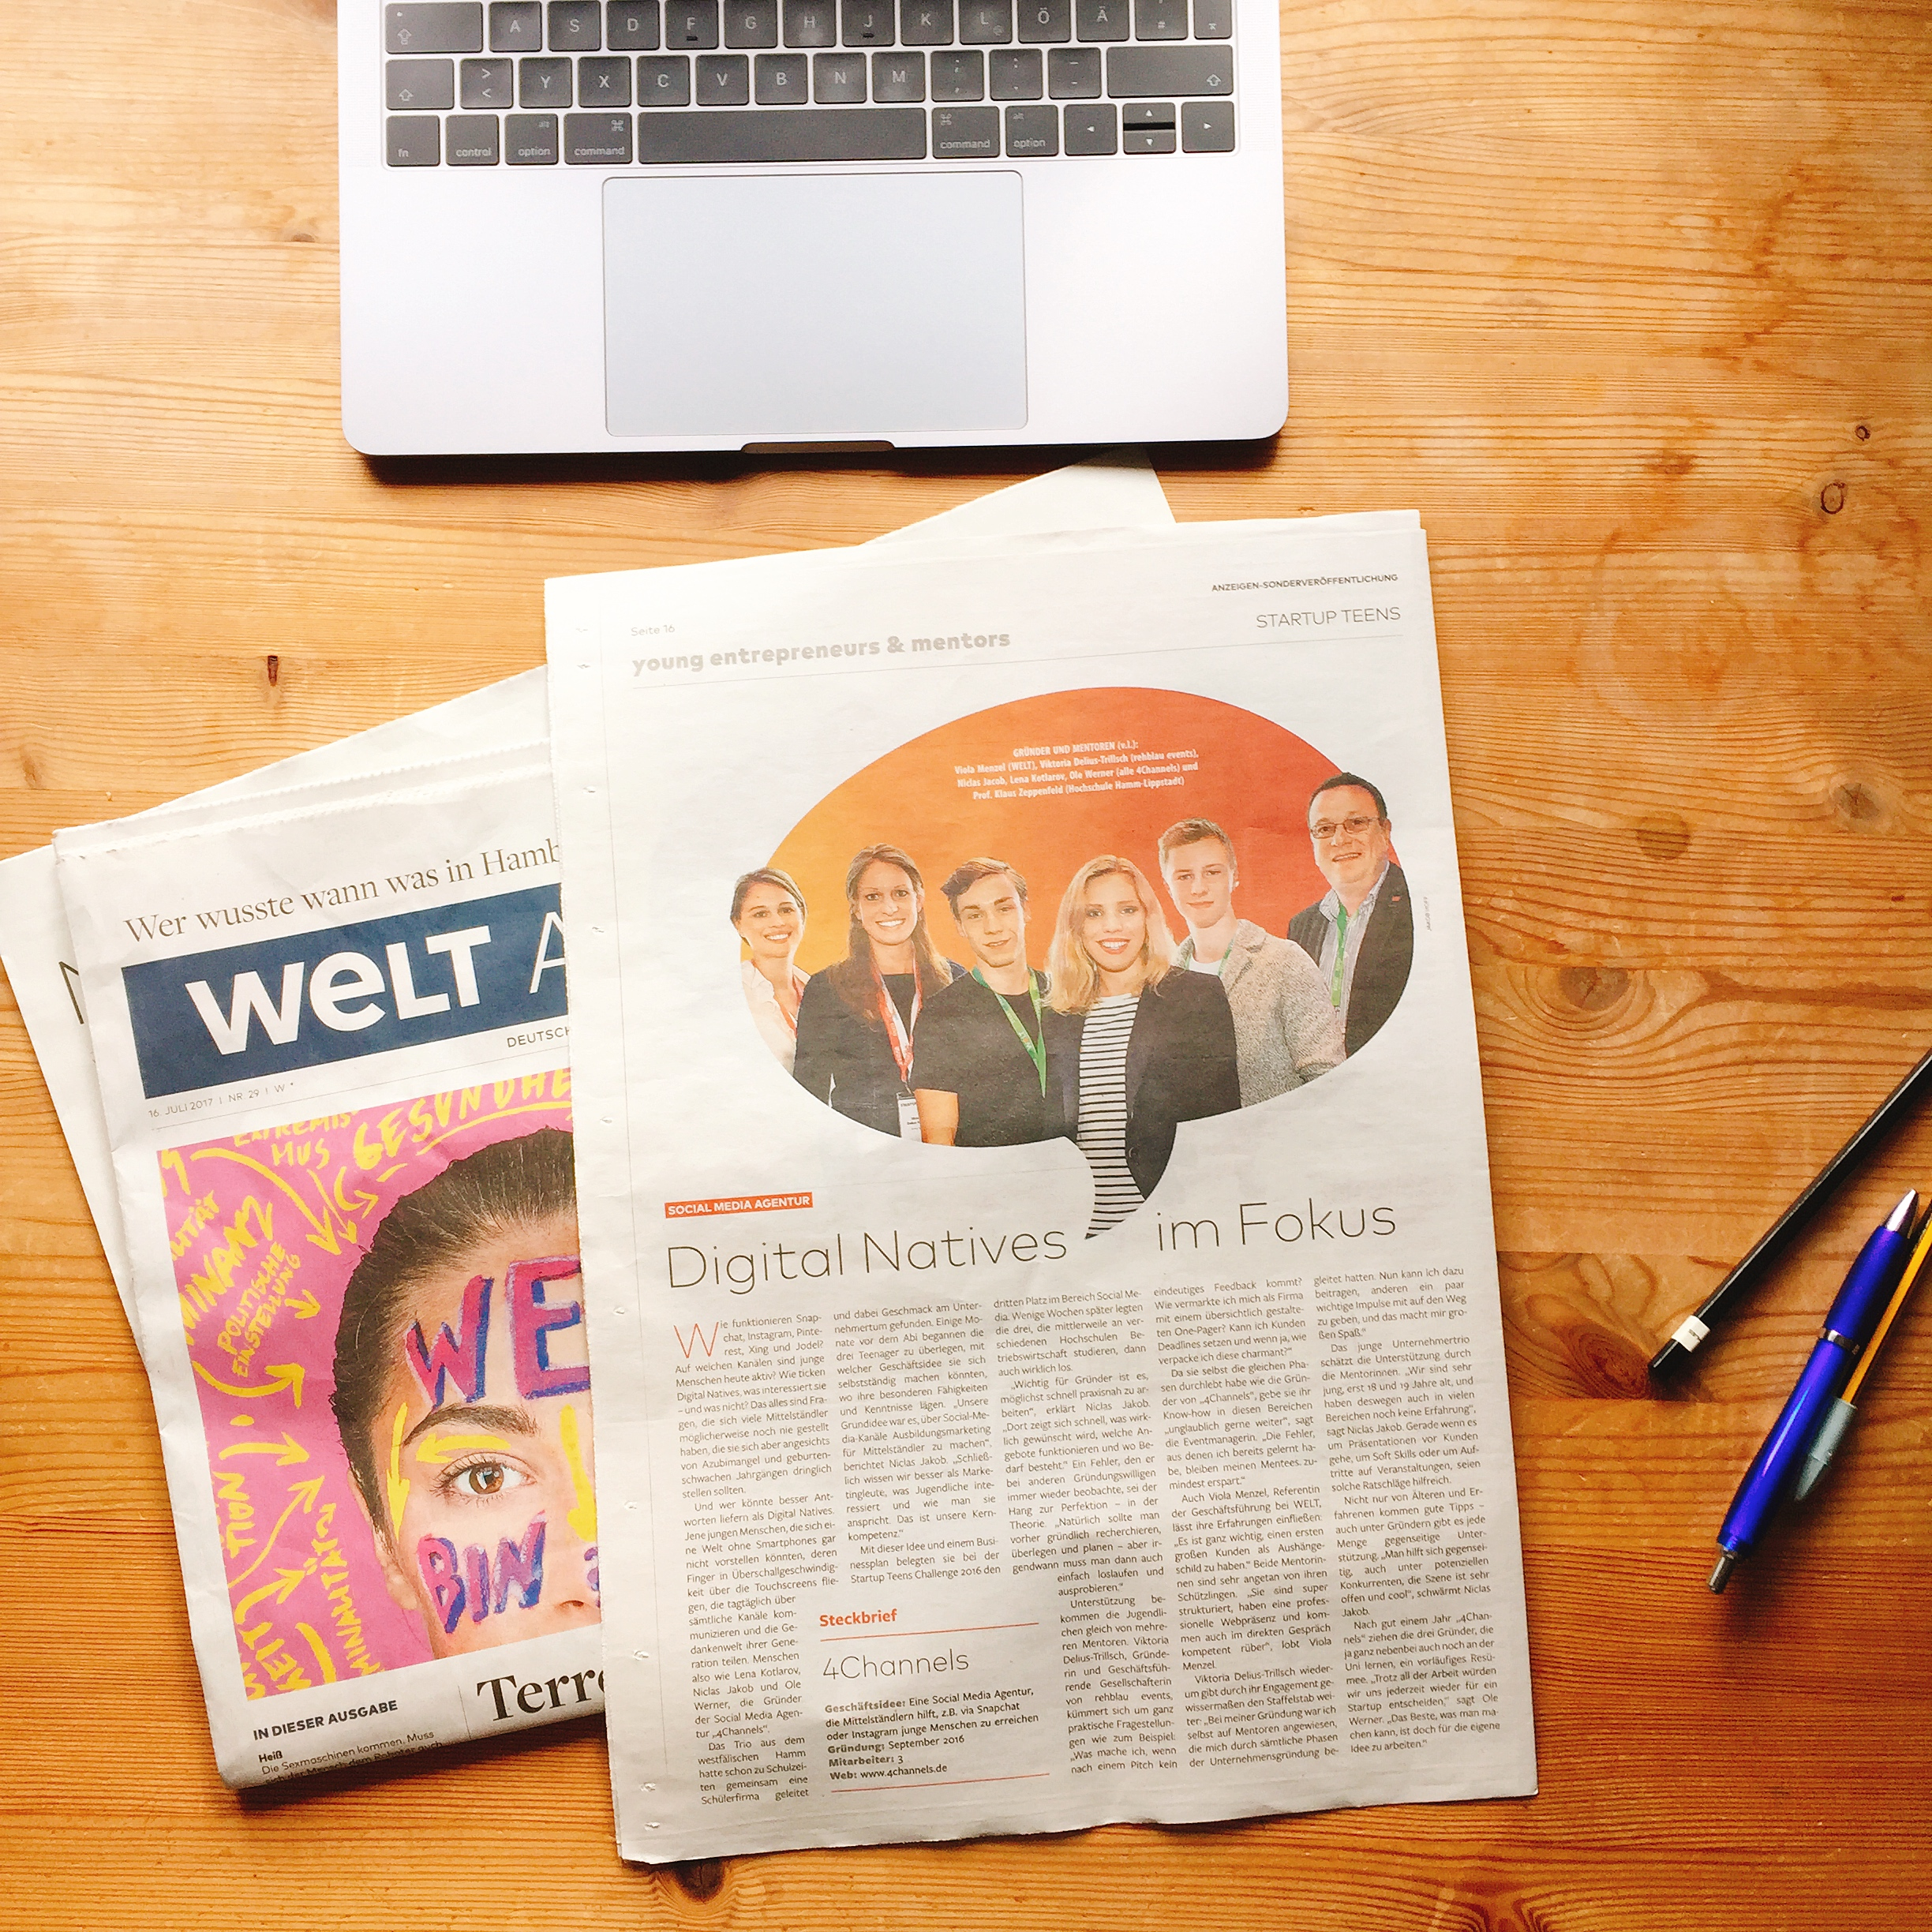 4Channels-WELT am Sonntag